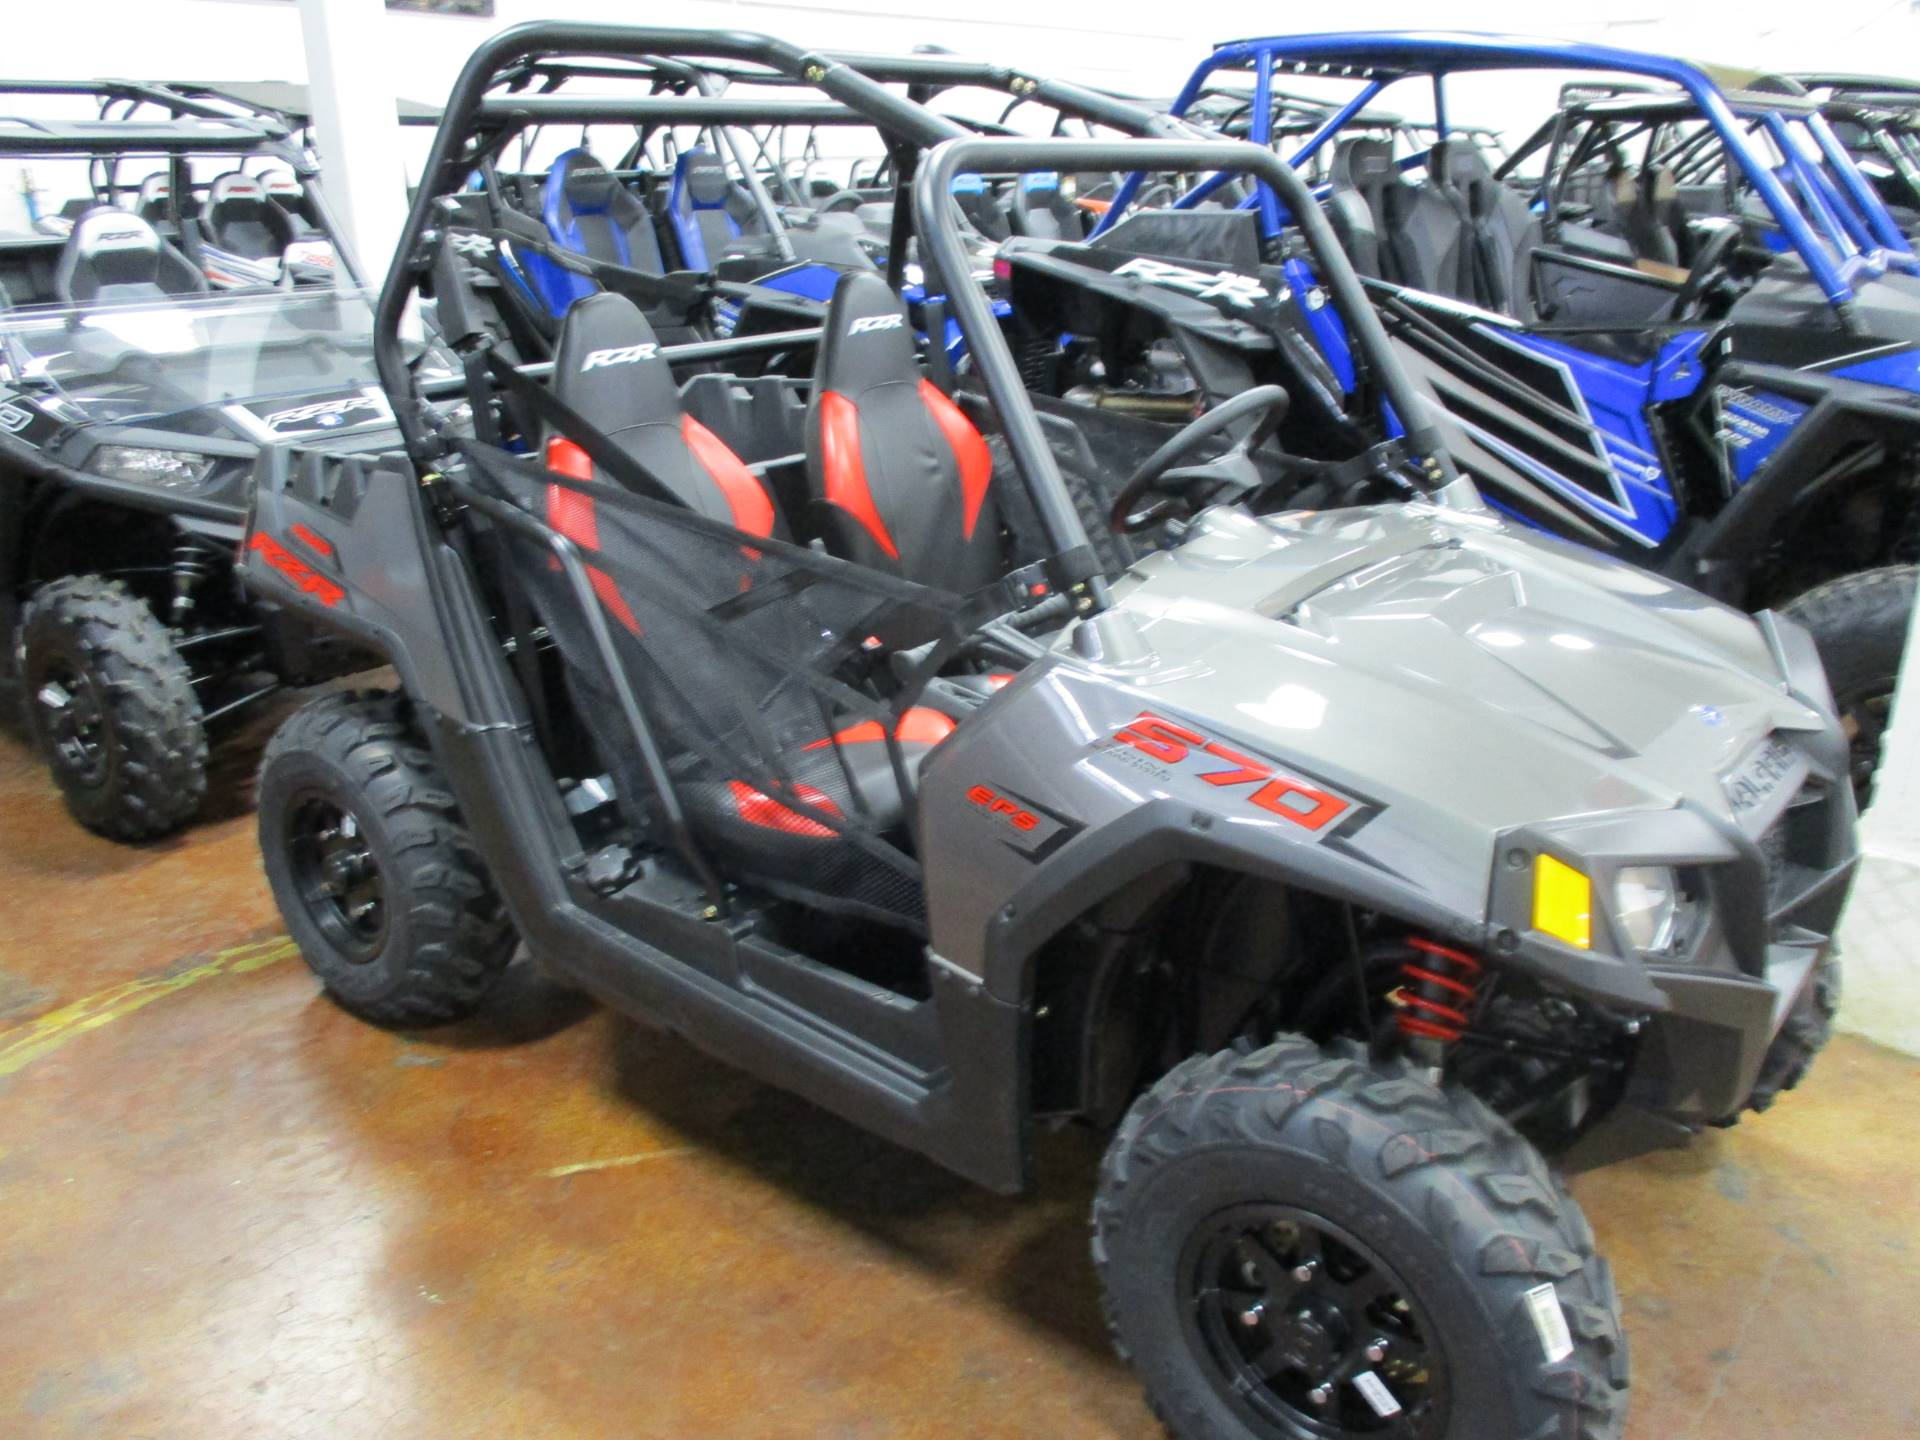 2019 Polaris RZR 570 EPS for sale 77750